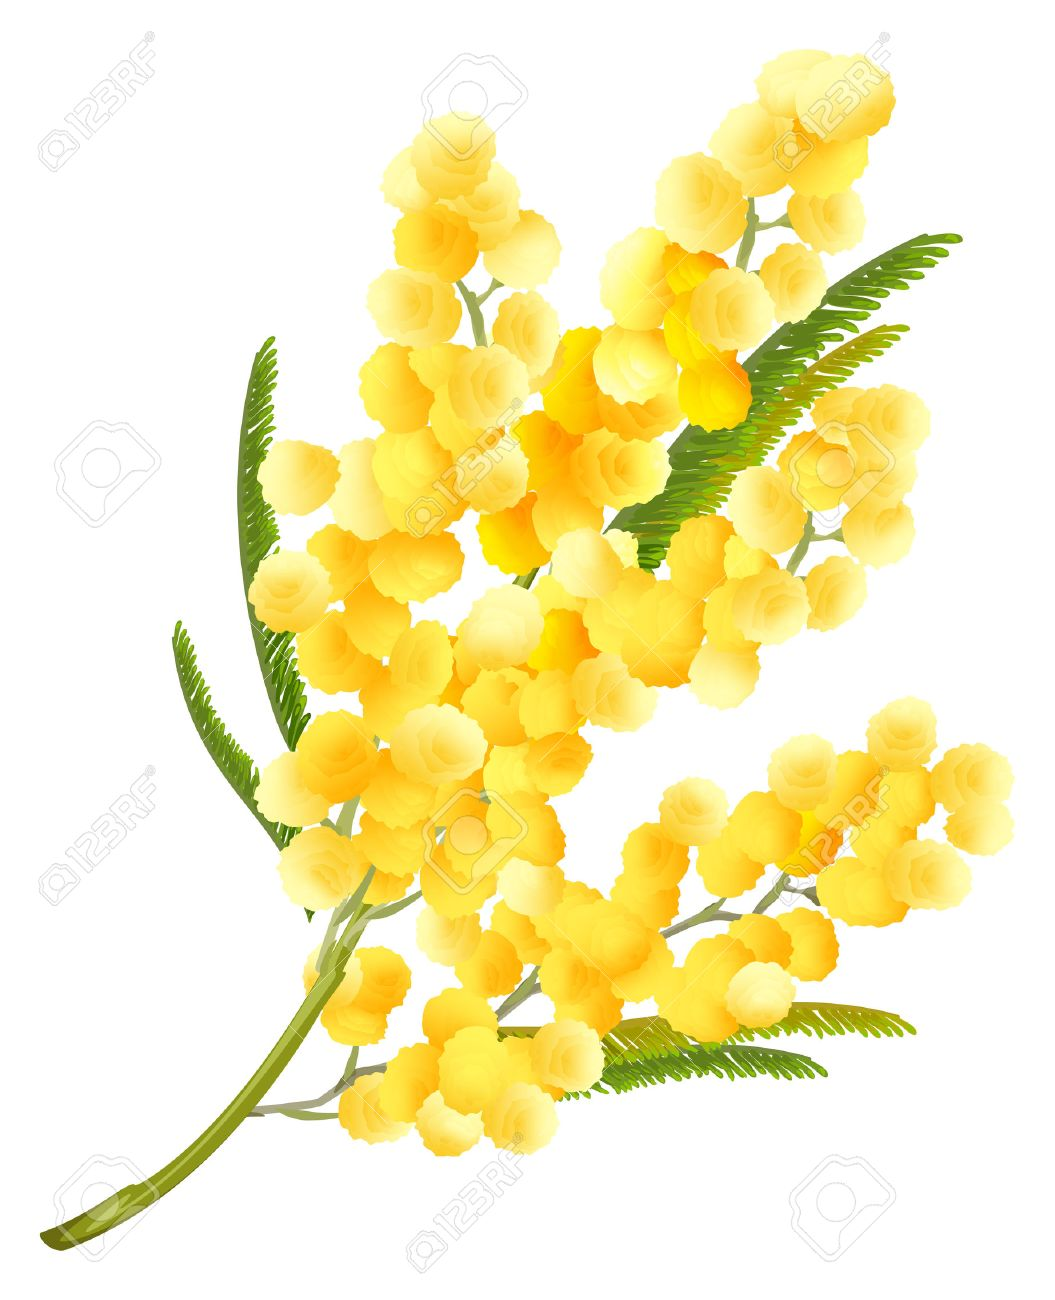 Yellow mimosa flower. Acacia flower symbol of Womens Day. Isolated on white illustration - 53141988